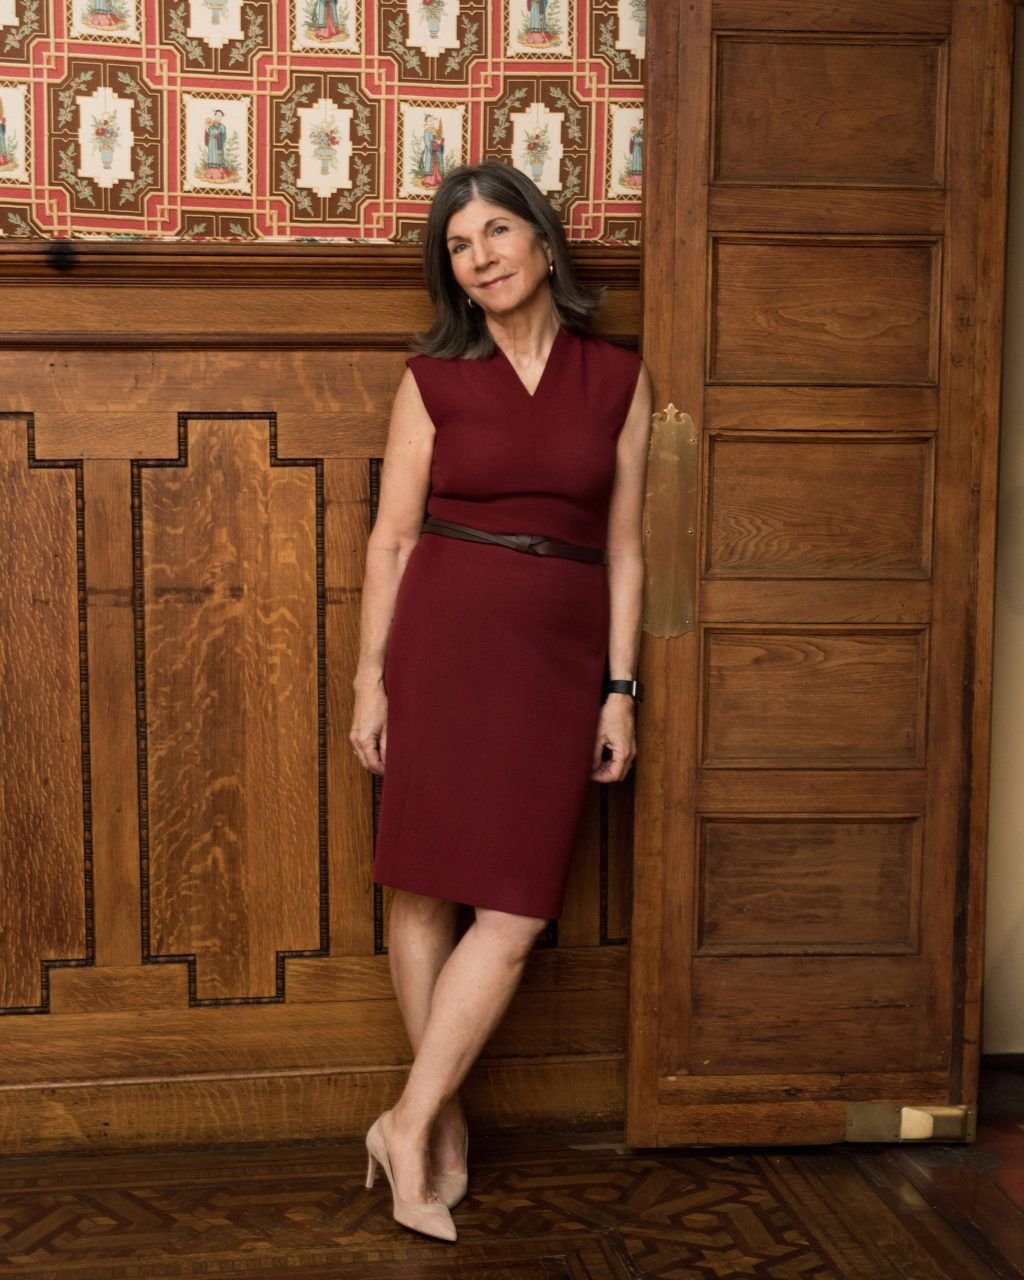 Author anna quindlen on her career journey and writing